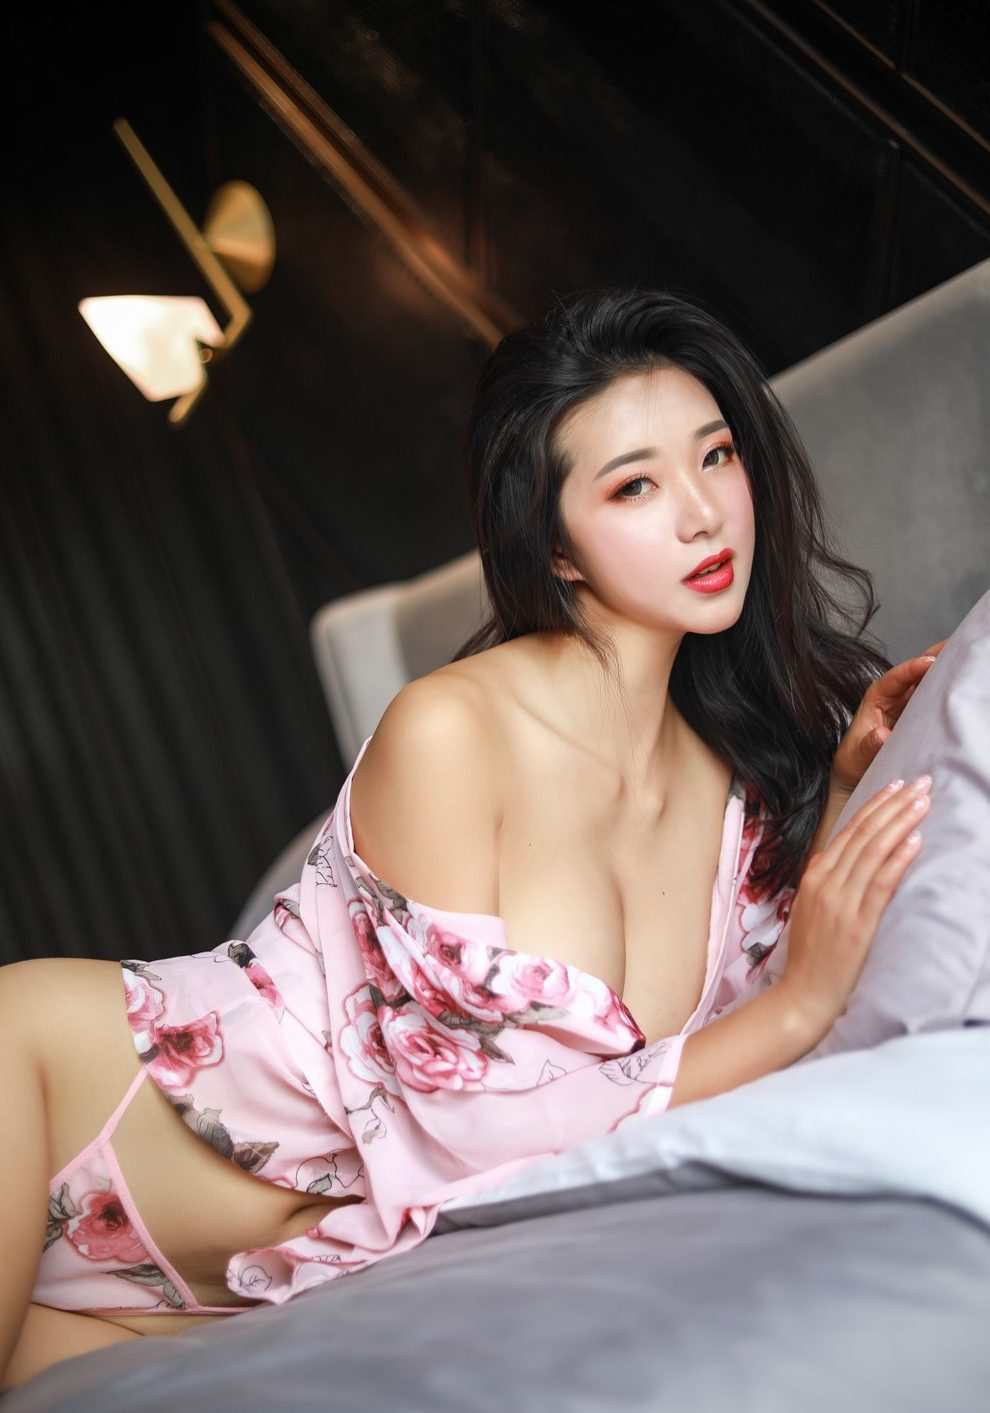 kiki - hot asian girl with big bust